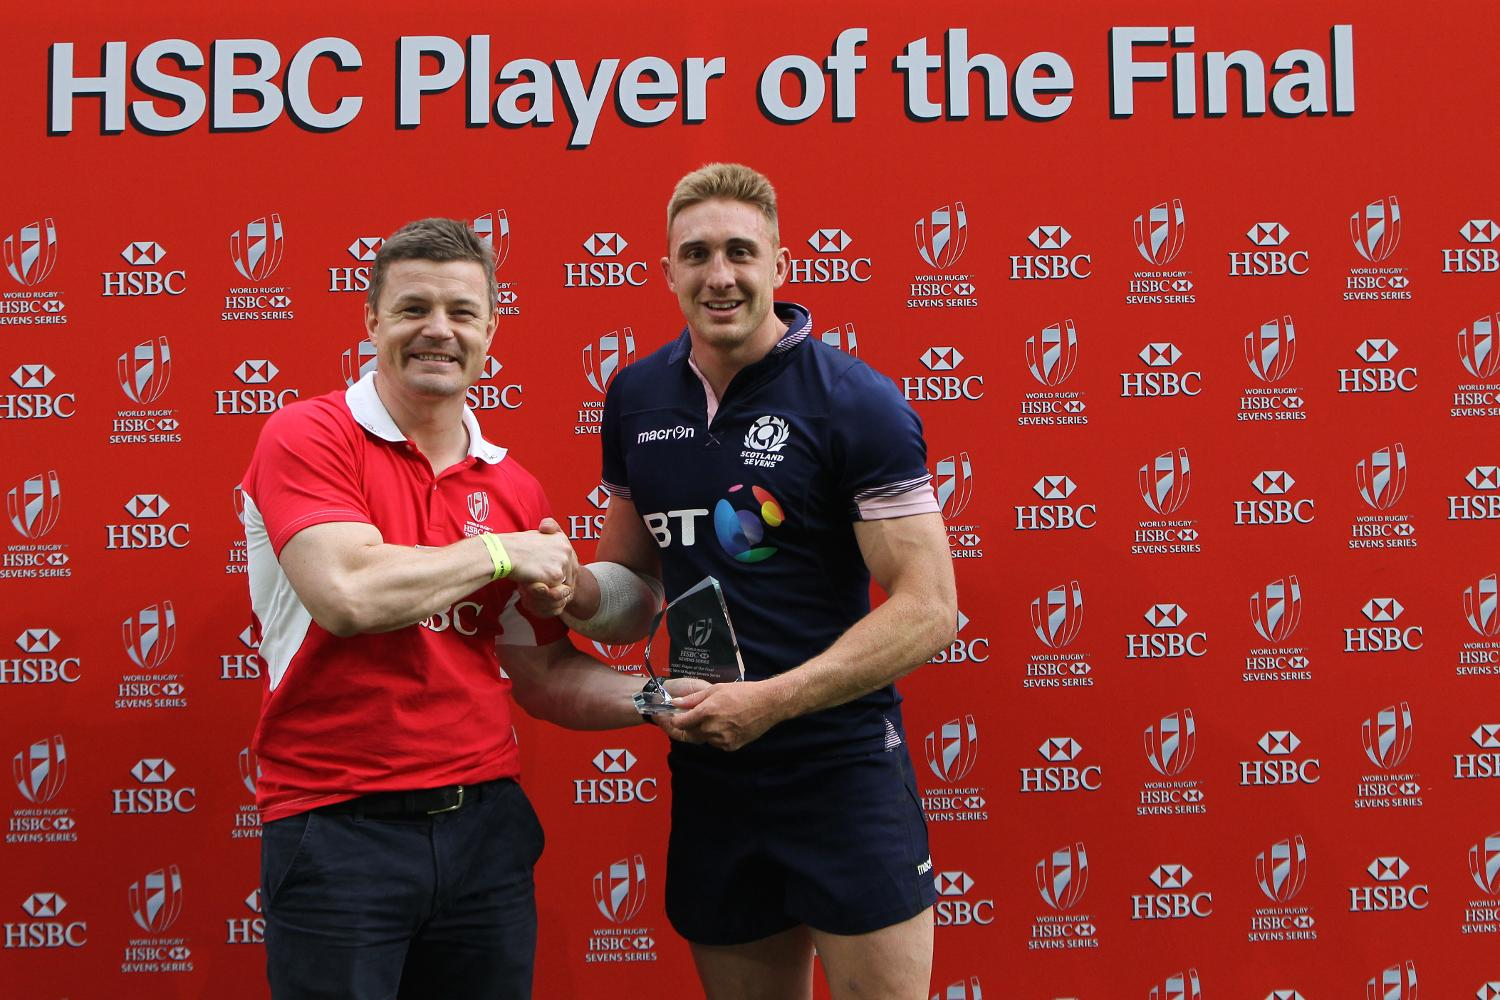 Dougie Fife wins the HSBC Player of the Final in London